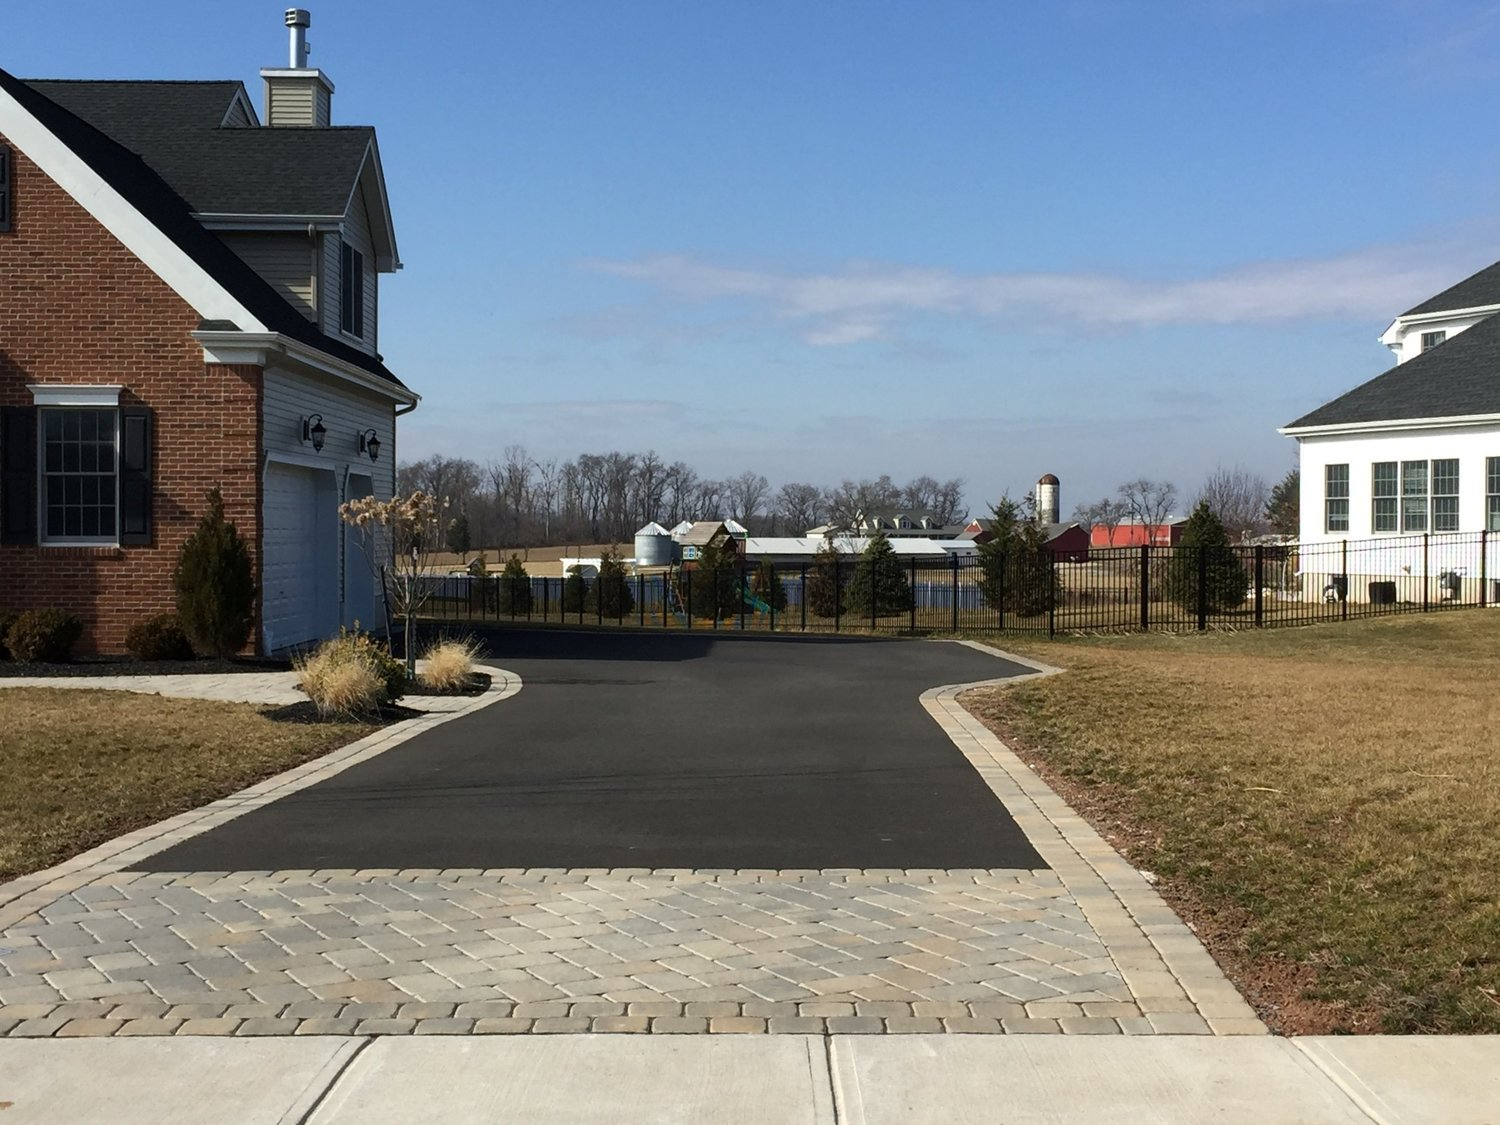 Lou porchetta paving central new jerseys leading home brick pavers and driveway apron belle mead nj biocorpaavc Images